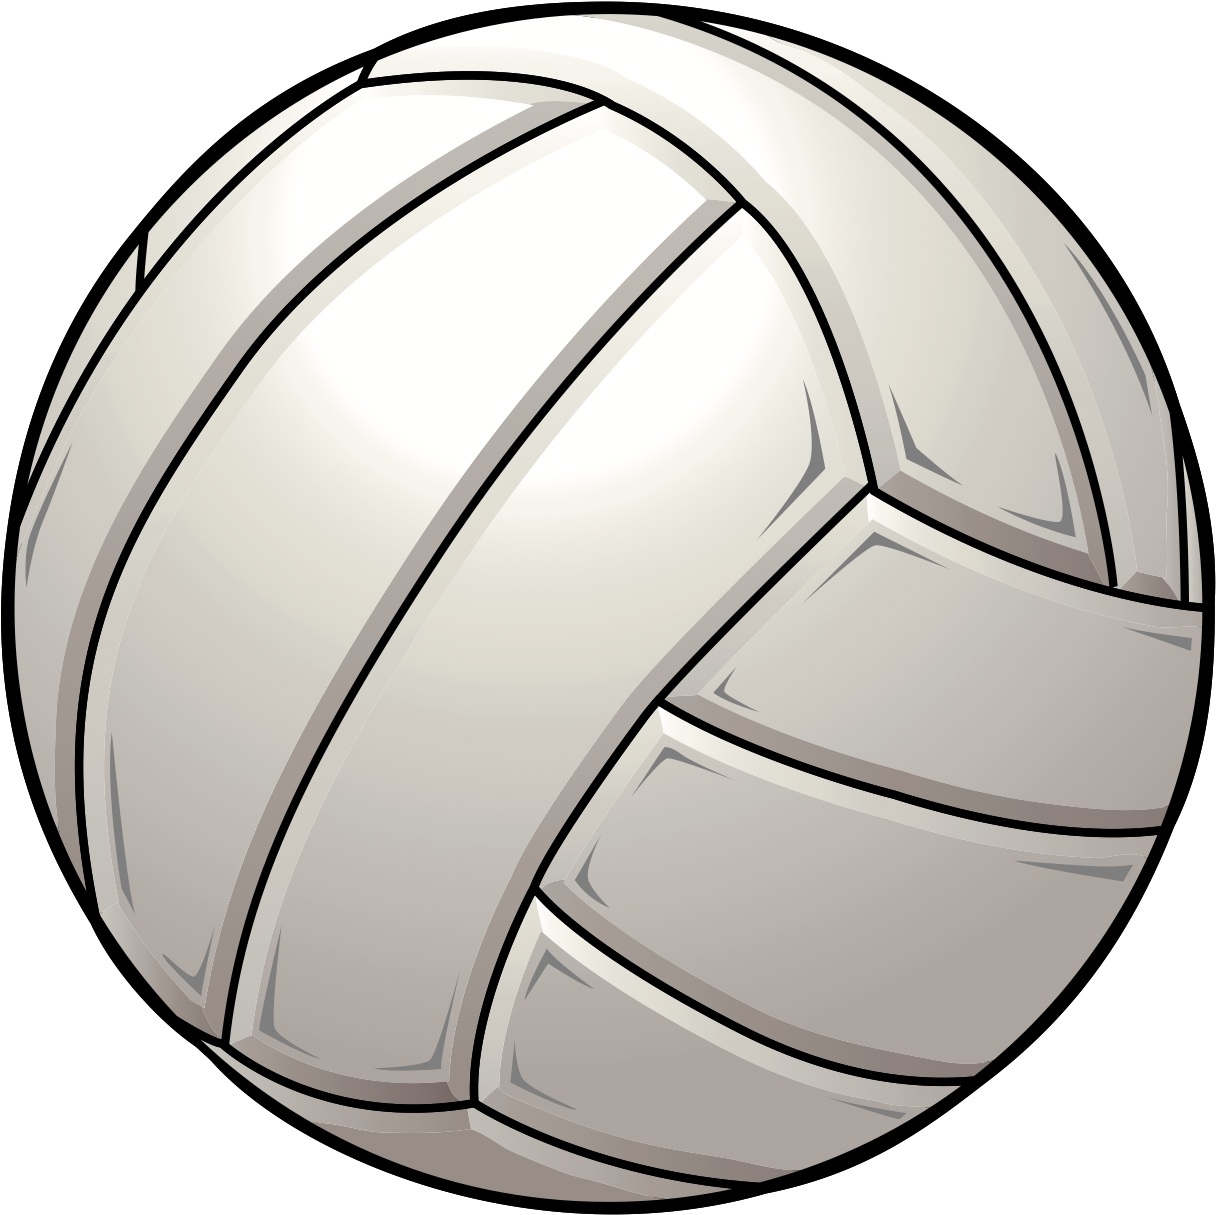 Free Volleyball Cliparts, Download Free Clip Art, Free Clip.